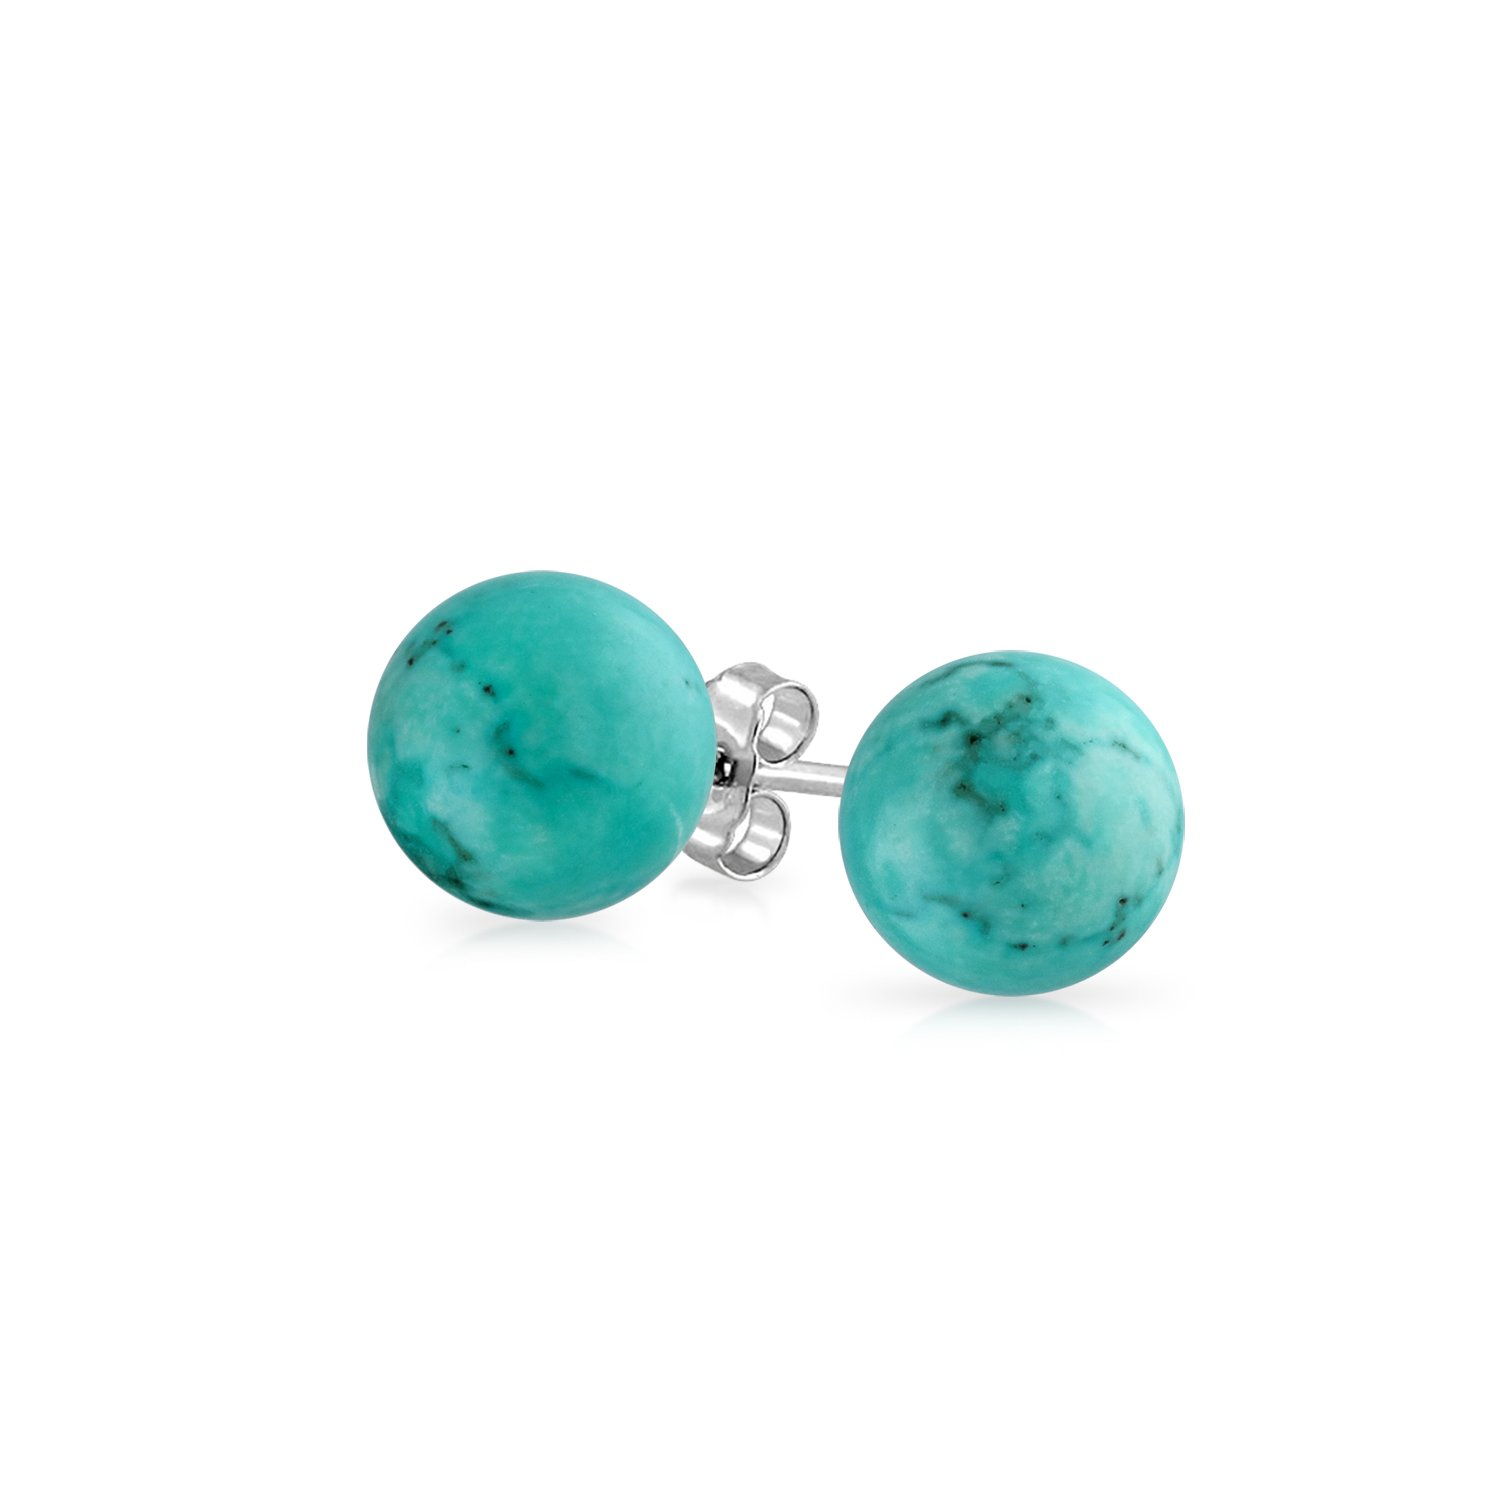 Bling Jewelry Silver Plated Ball Reconstituted Turquoise Earrings Studs 6mm YP-TURQ-STUD-7mm